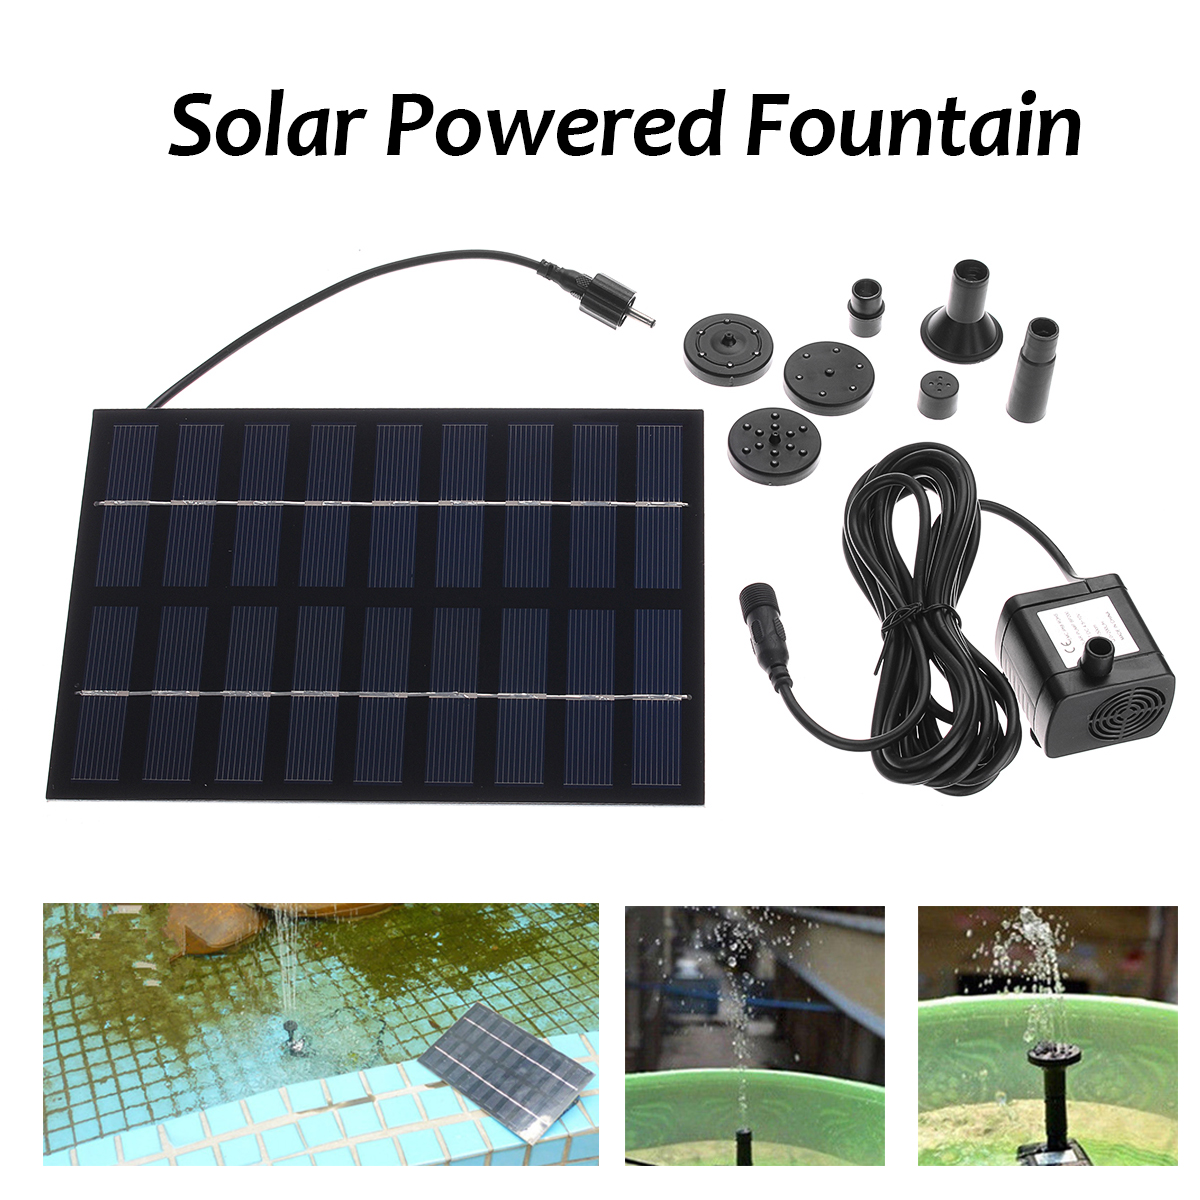 9V Solar Pump Solar Power Water Pump Panel Kit Fountain Pond Pool Water Garden Submersible Rockery Aquarium Water Pump free shipping clb 4500 submersible pump seafood keeper garden watering water cycle rockery pool drain